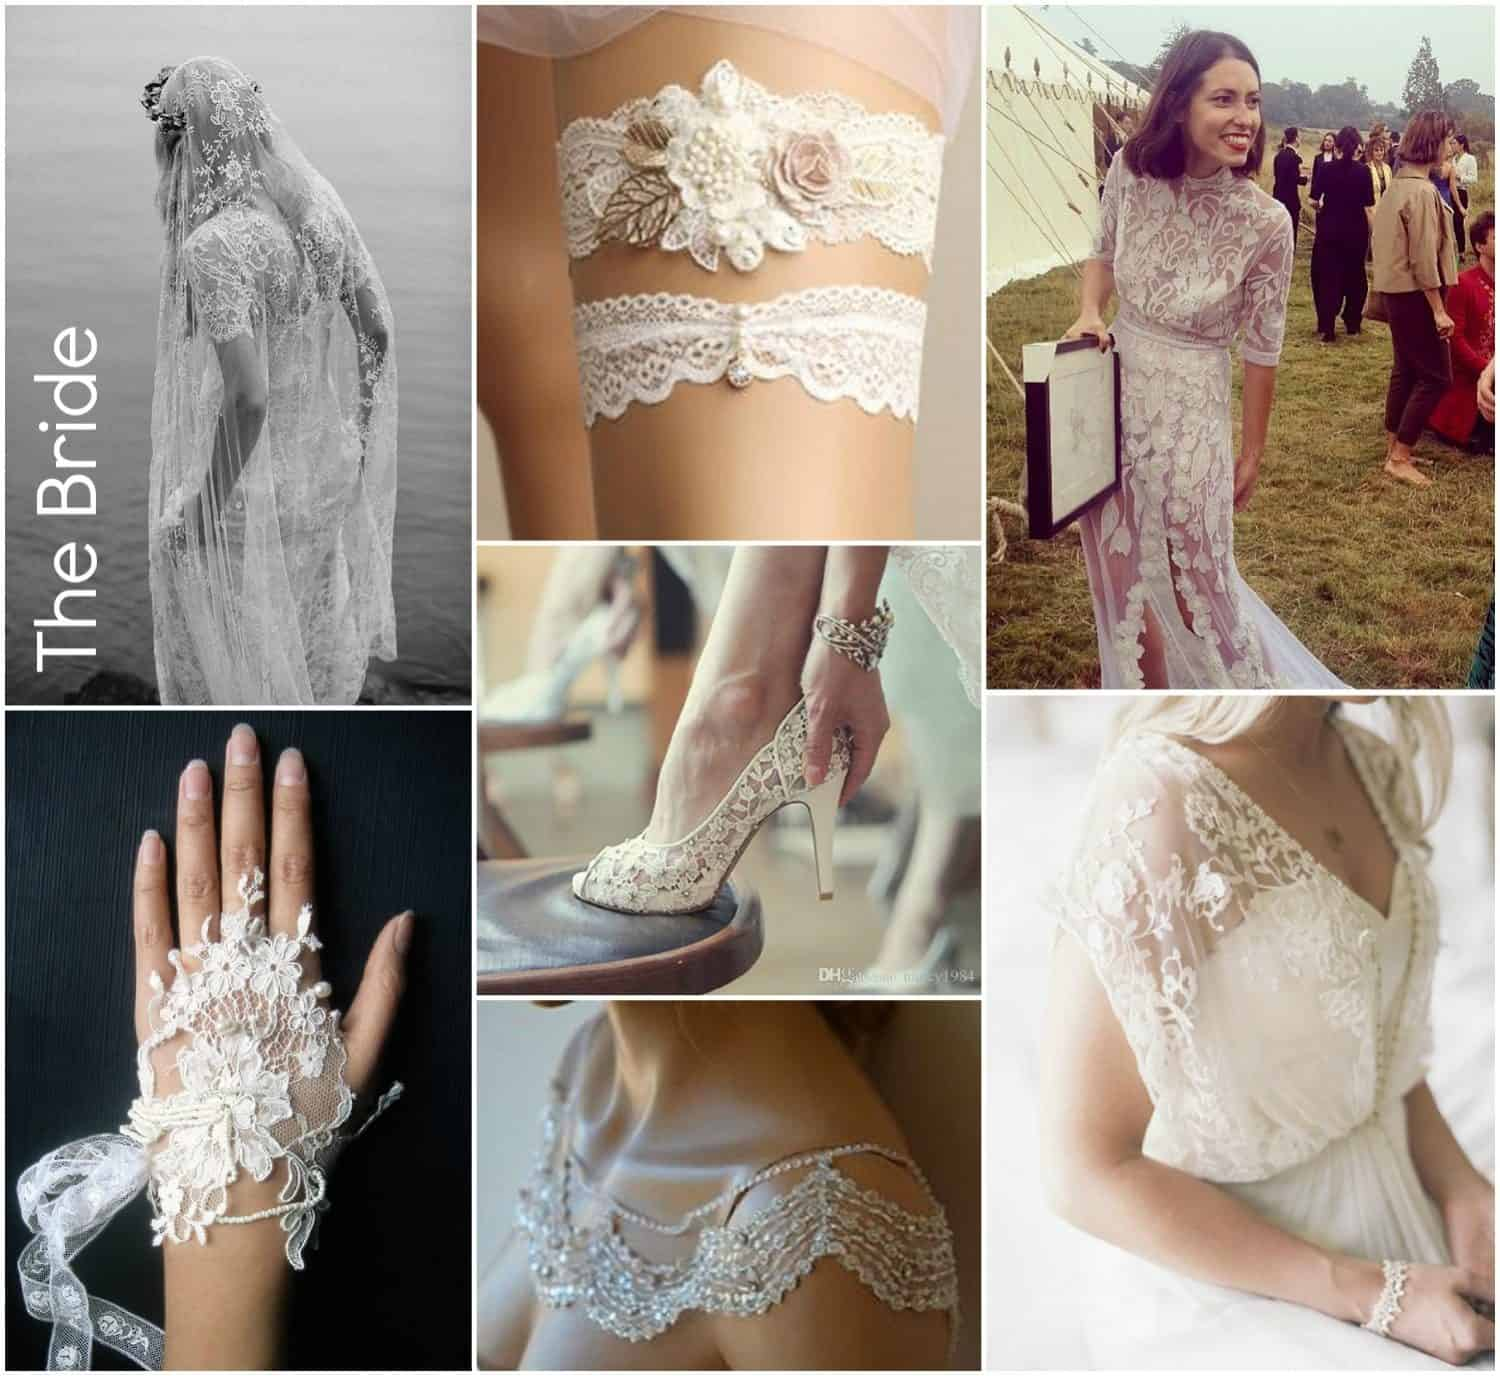 lace inspiration for the bride, garters, gowns, shoes, veils, gloves, overlays, jackets